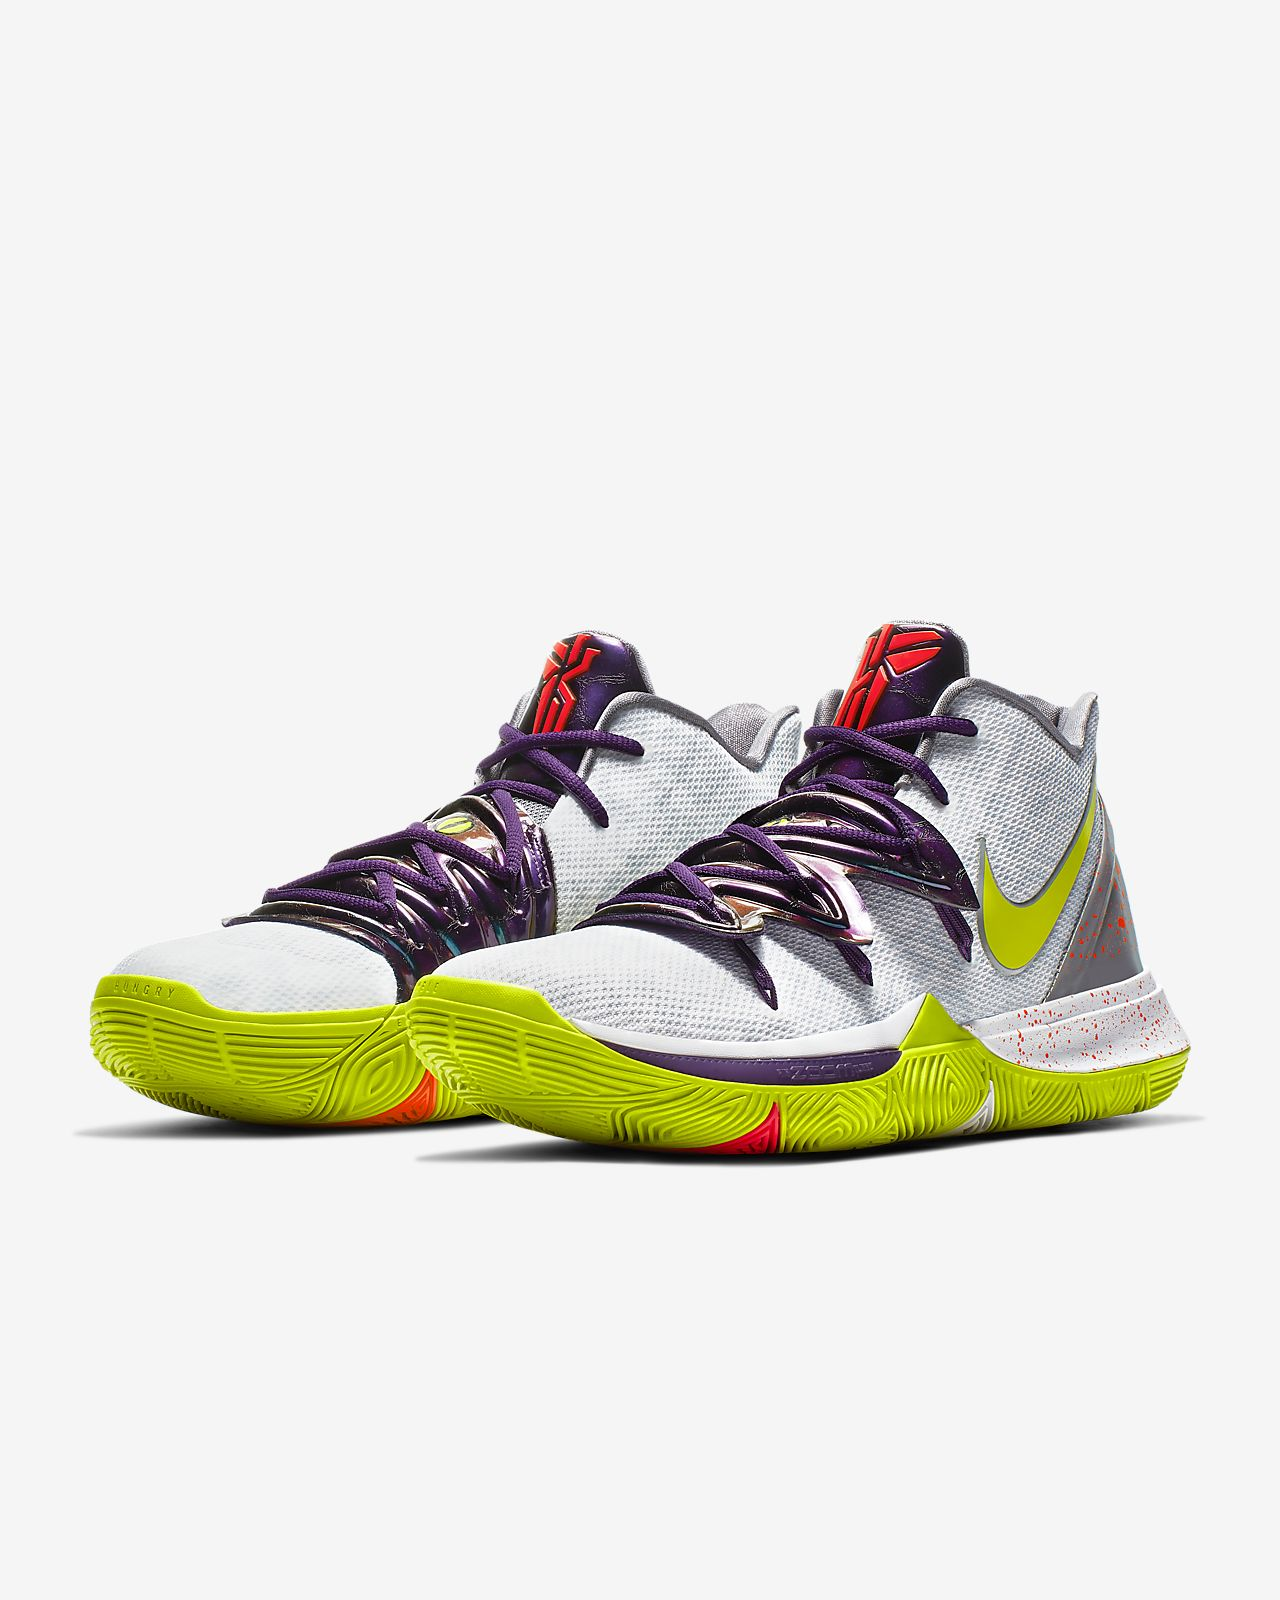 1ce50be5f1c6 Low Resolution Kyrie 5 Basketball Shoe Kyrie 5 Basketball Shoe